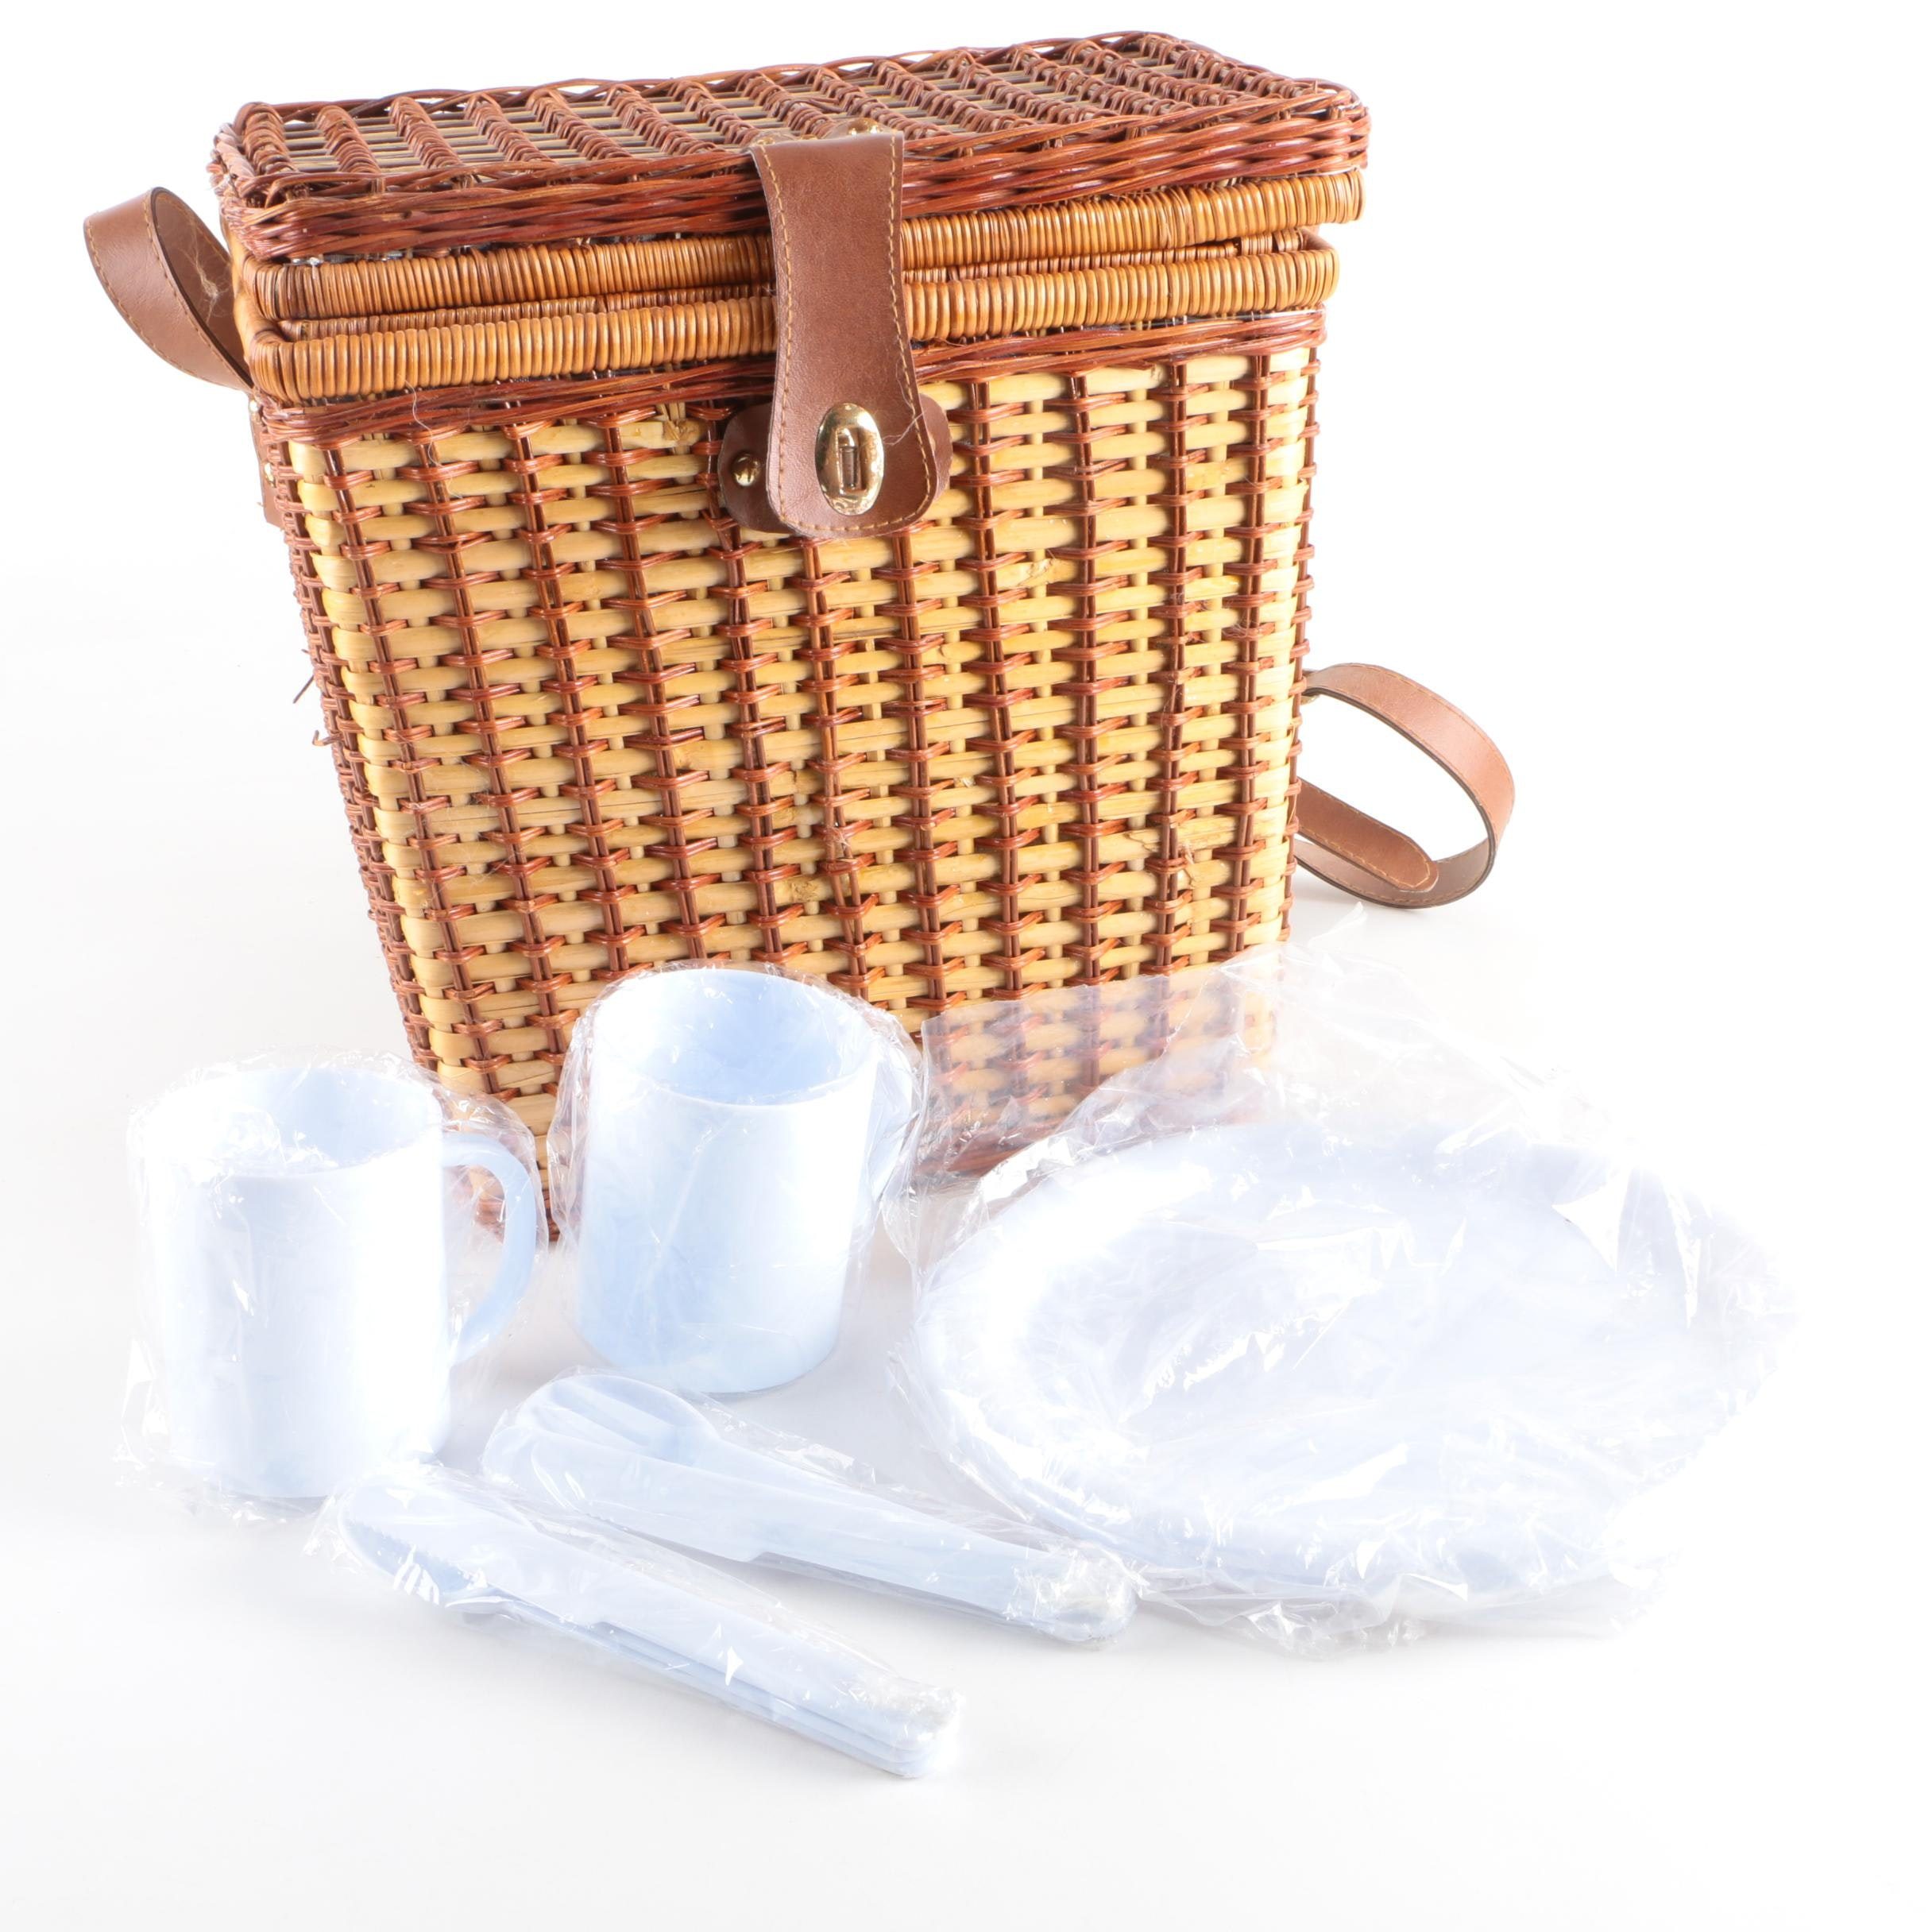 Picnic Basket with Plastic Tableware